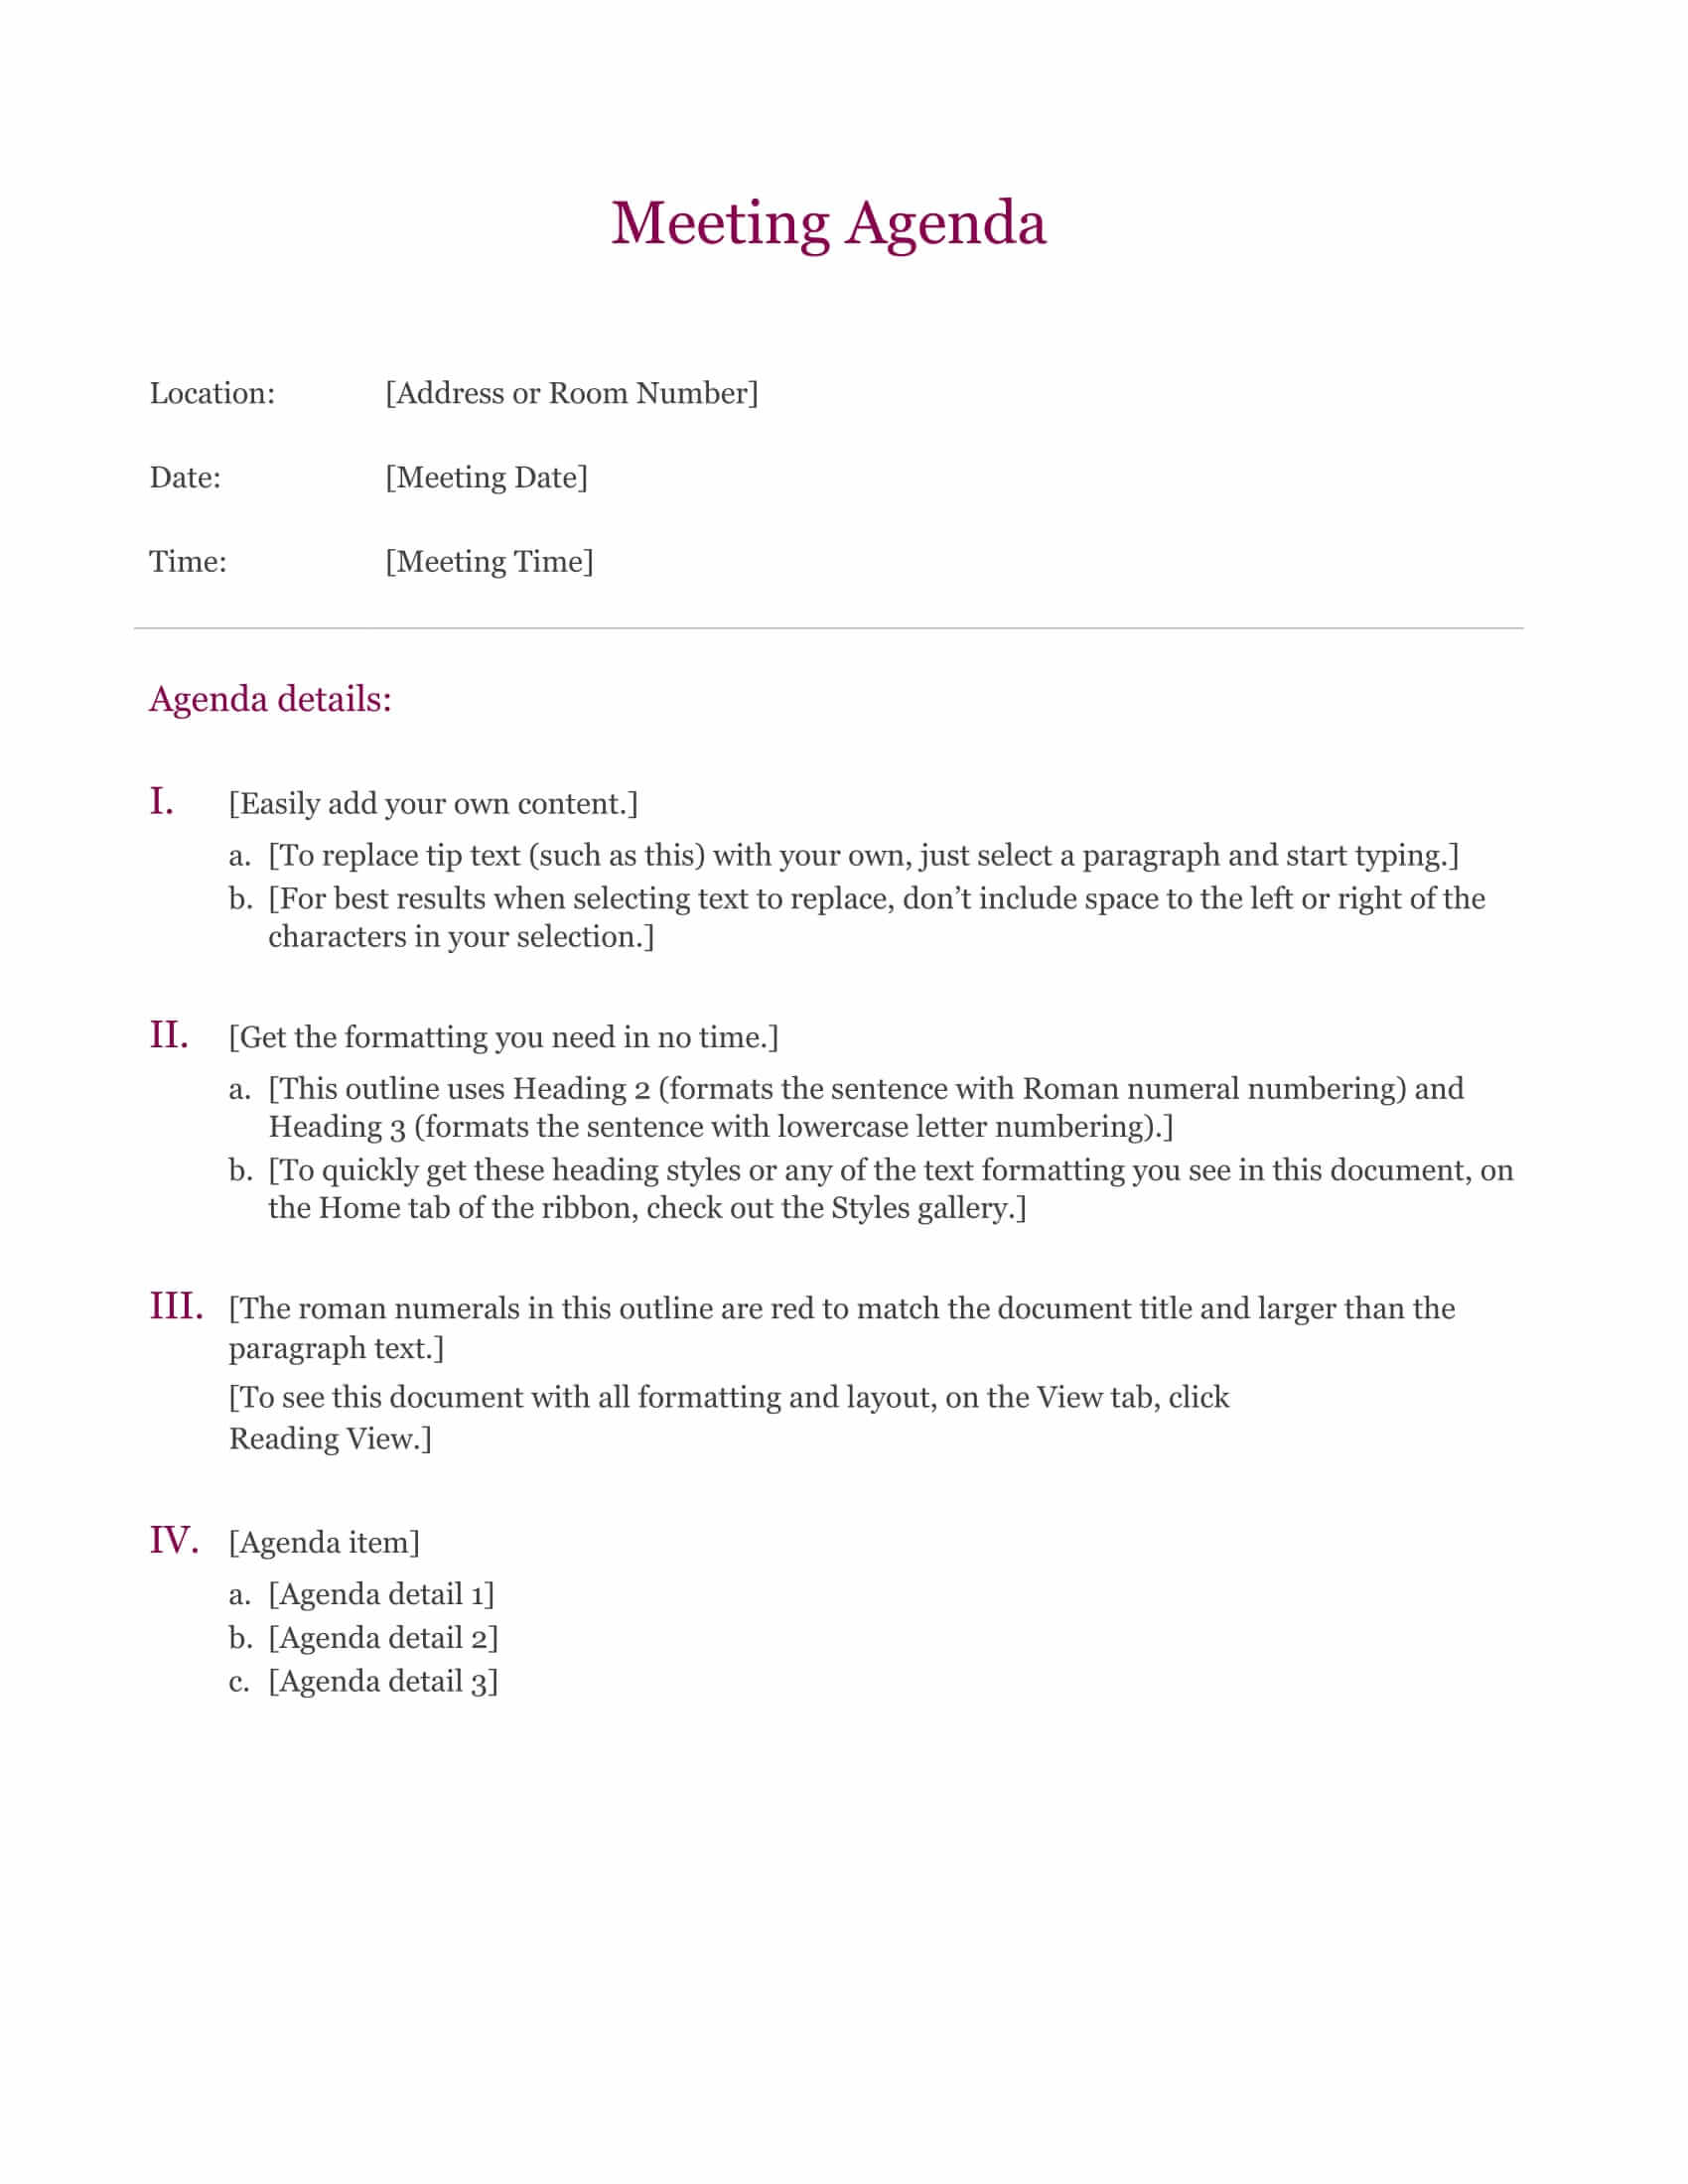 download a meeting agenda template